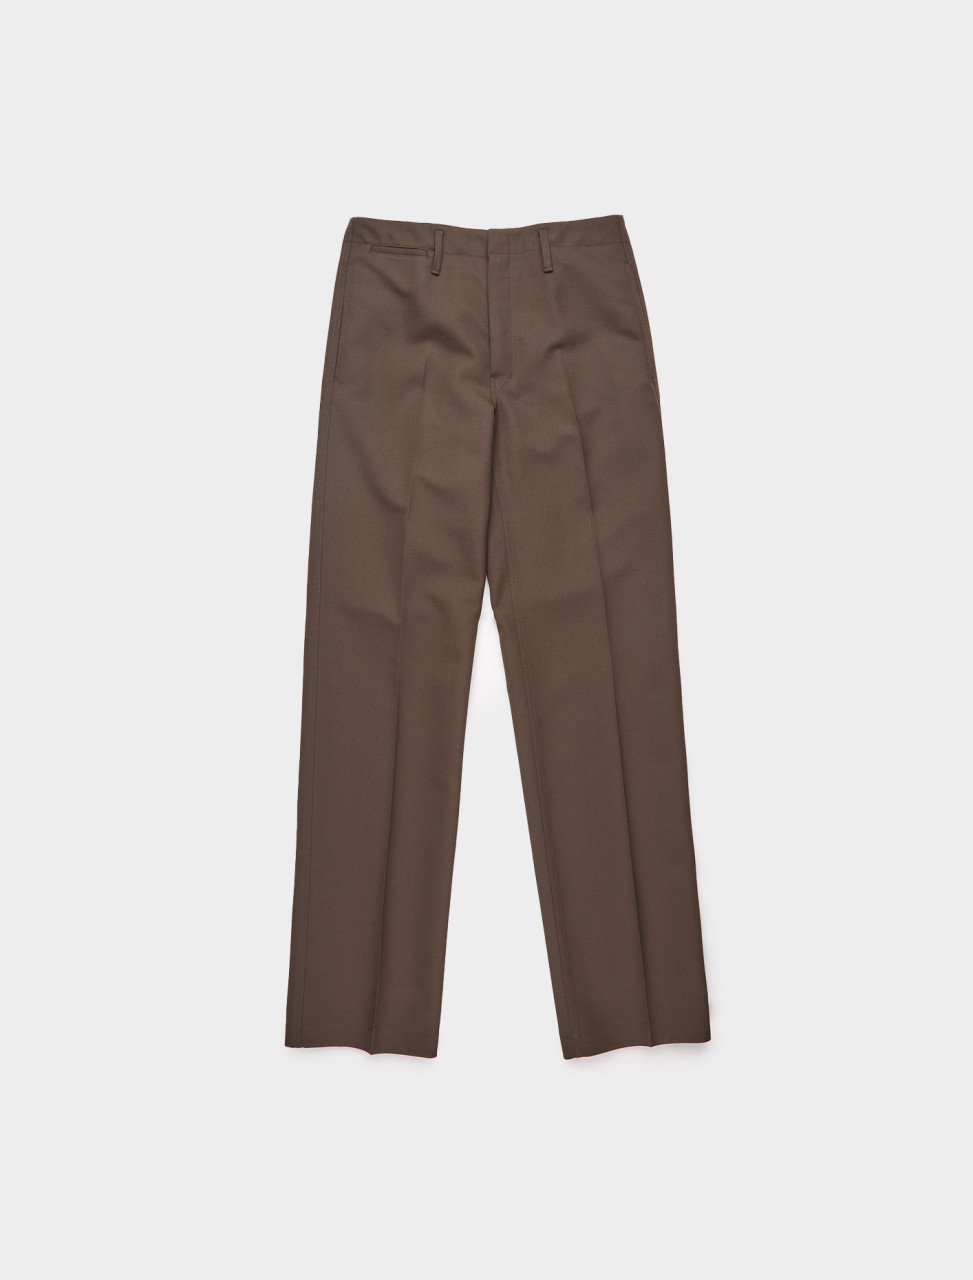 218-M-203-PA158-LF483-487 LEMAIRE STRAIGHT LEG TROUSER DARK BROWN